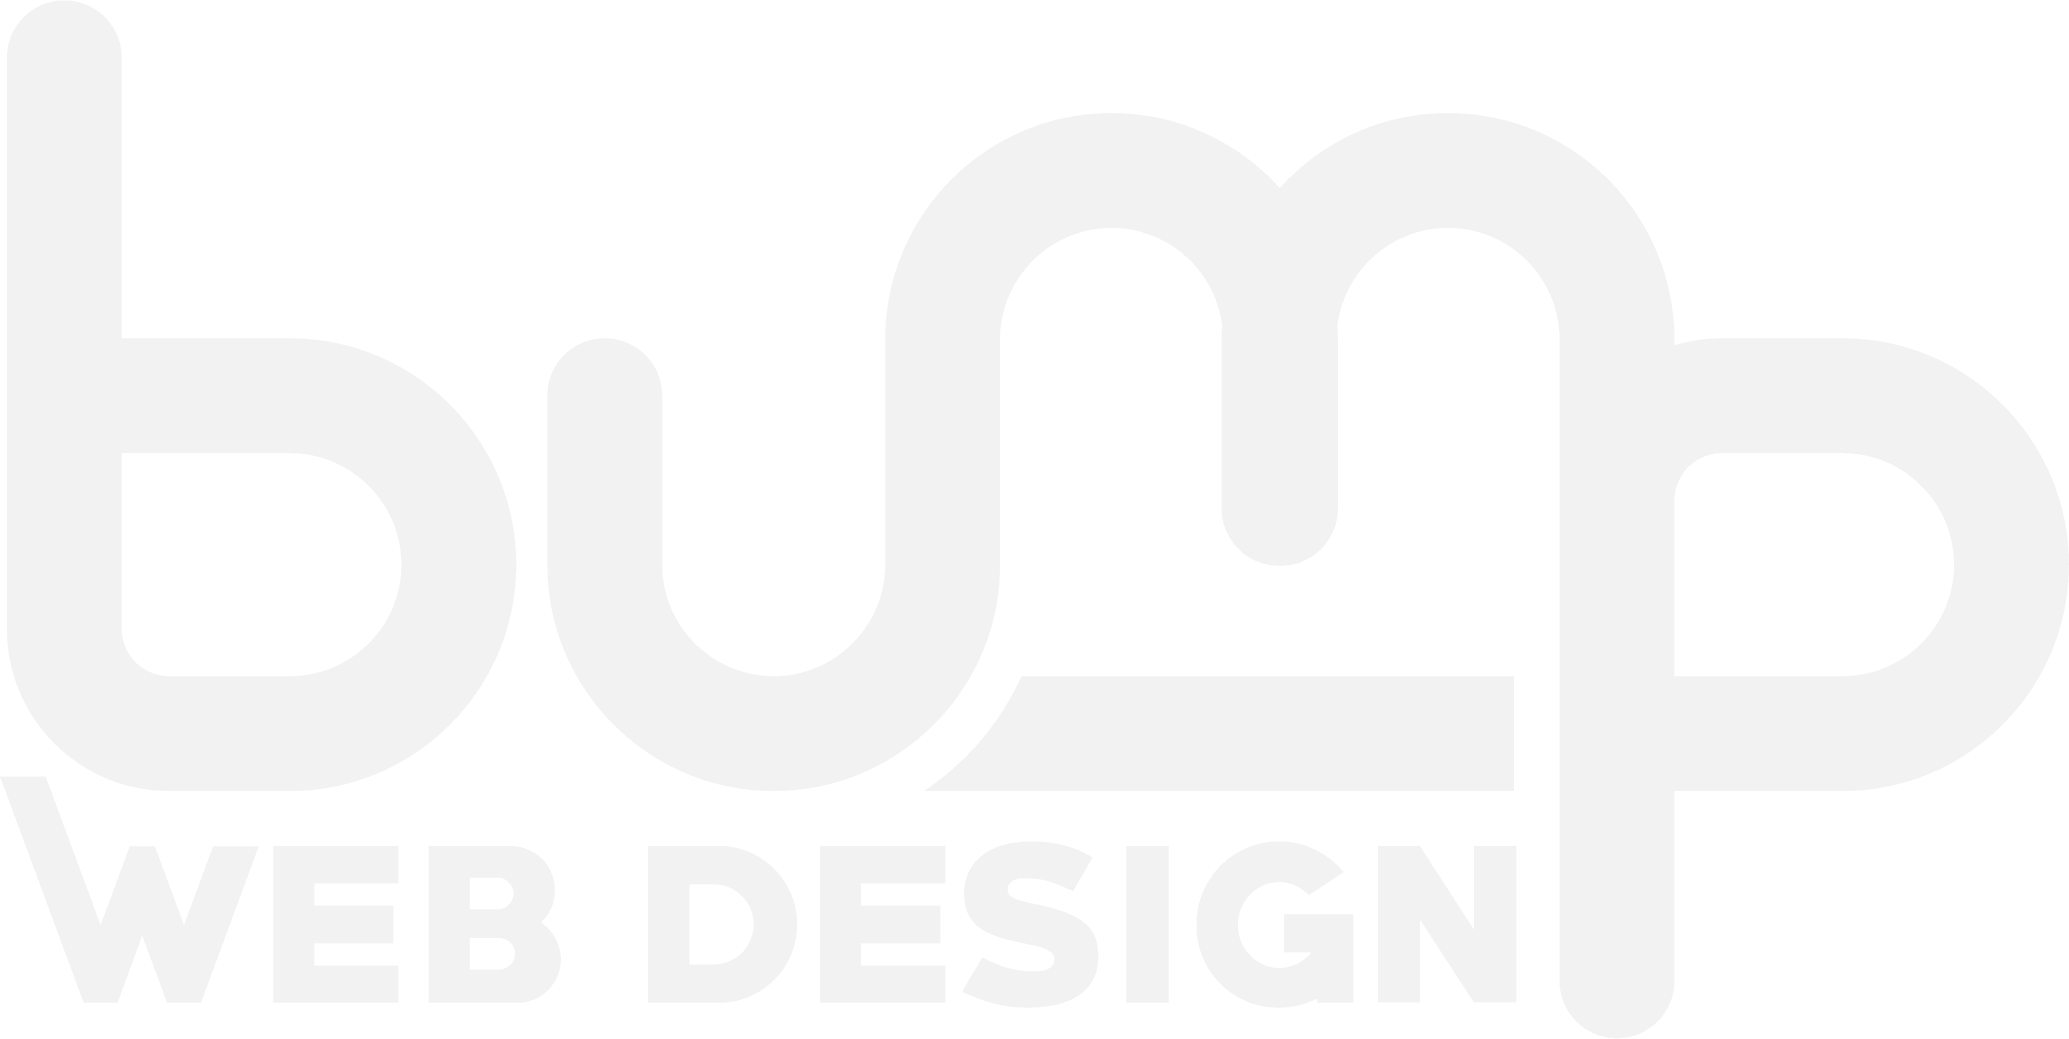 Bump Web Design | Free Web Design for Small Businesses